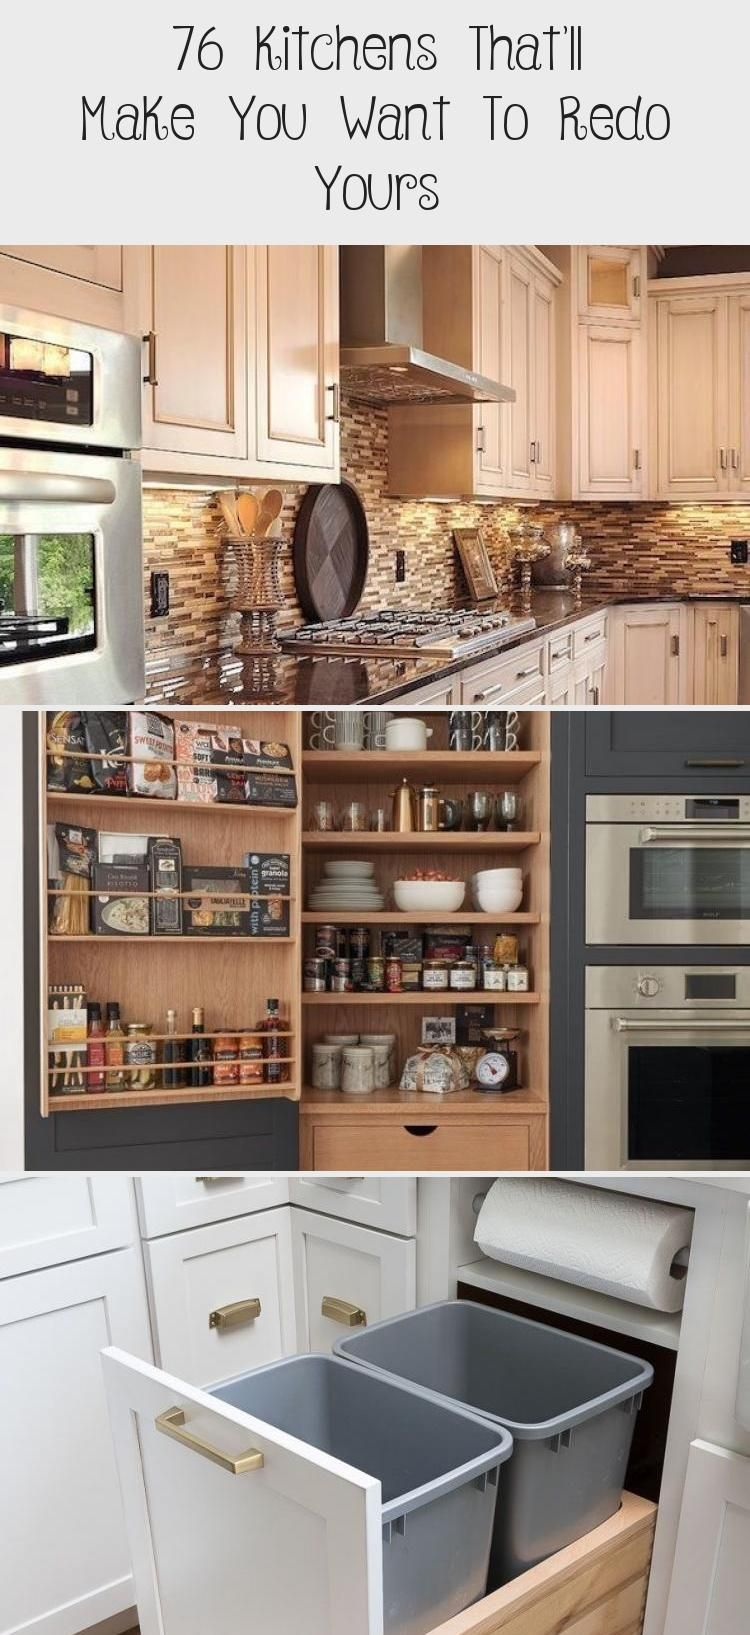 76 kitchens that ll make you want to redo yours kitchen on kitchens that ll make you want to redo yours id=58273